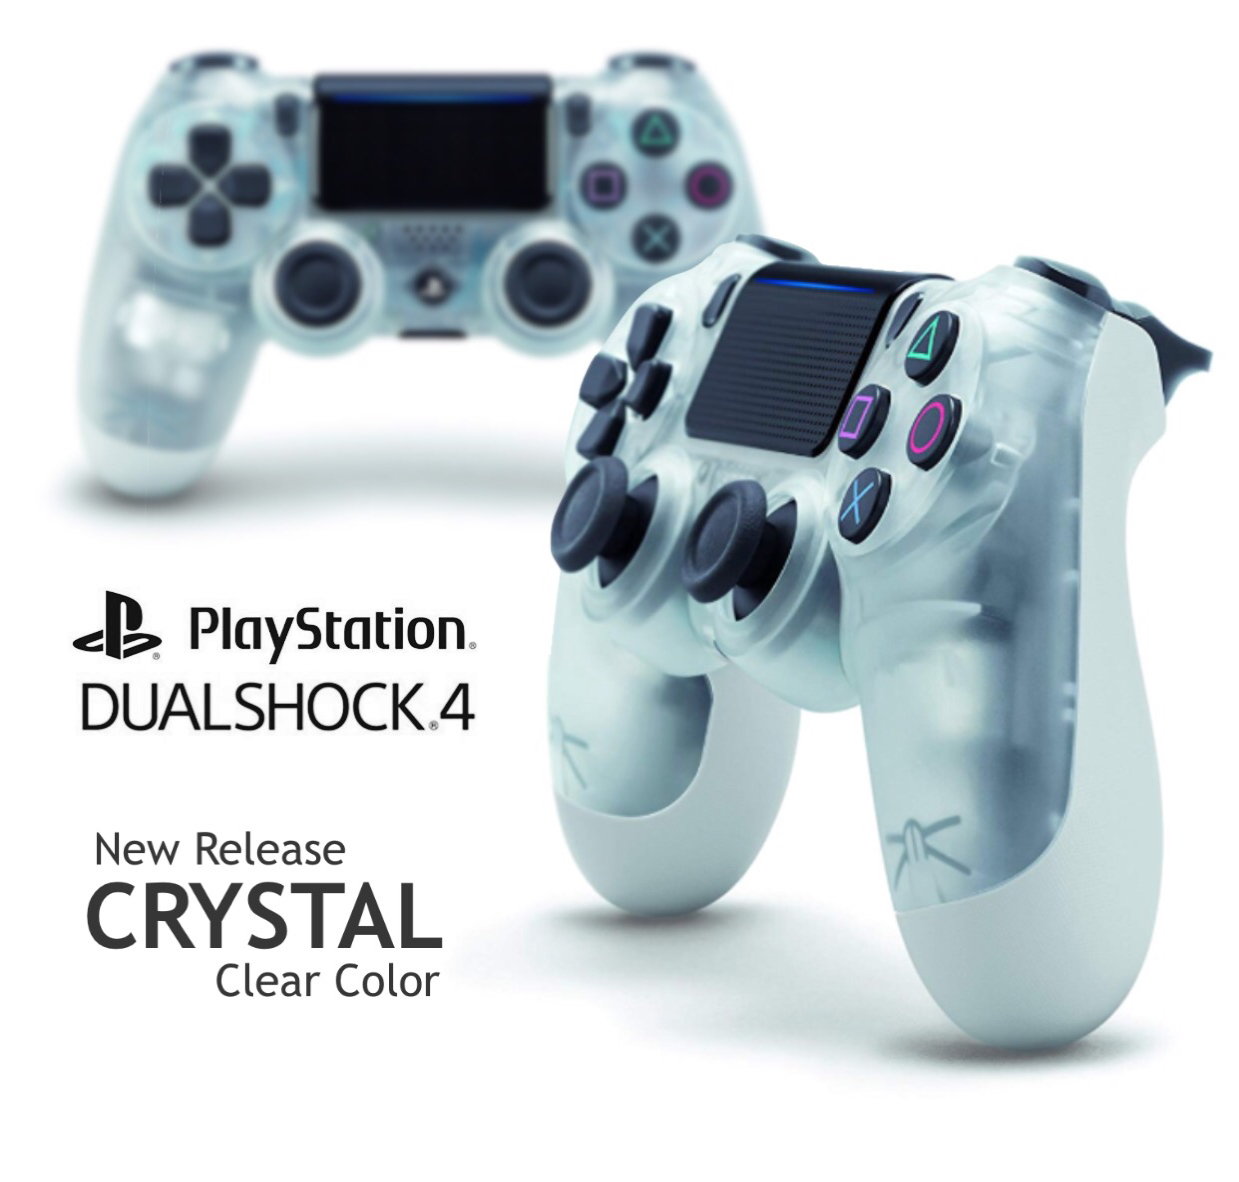 Sony DualShock 4 Wireless Controller for PlayStation 4 - Crystal Clear